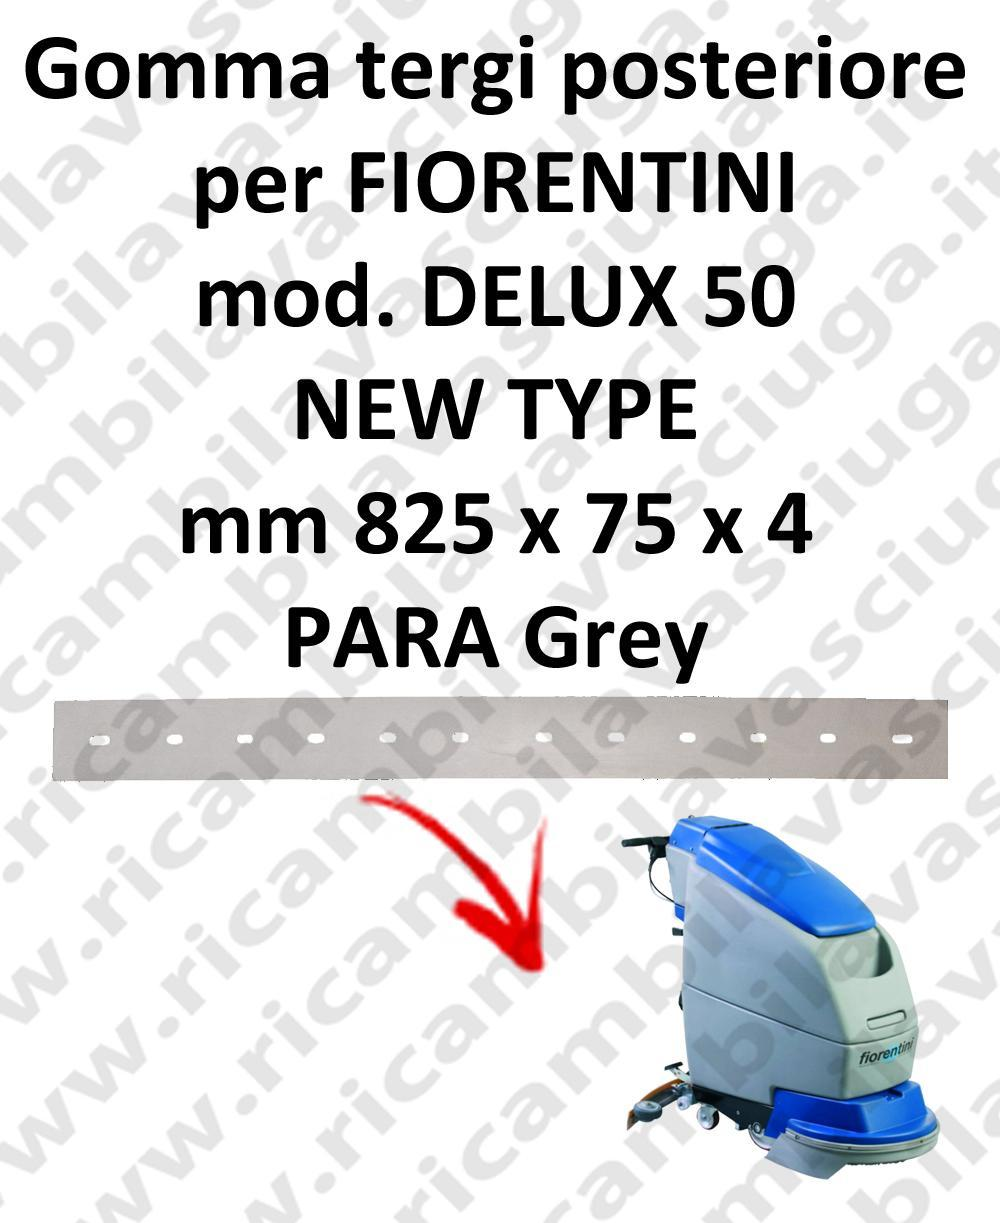 DELUX 50 new type Back Squeegee rubberfor FIORENTINI squeegee